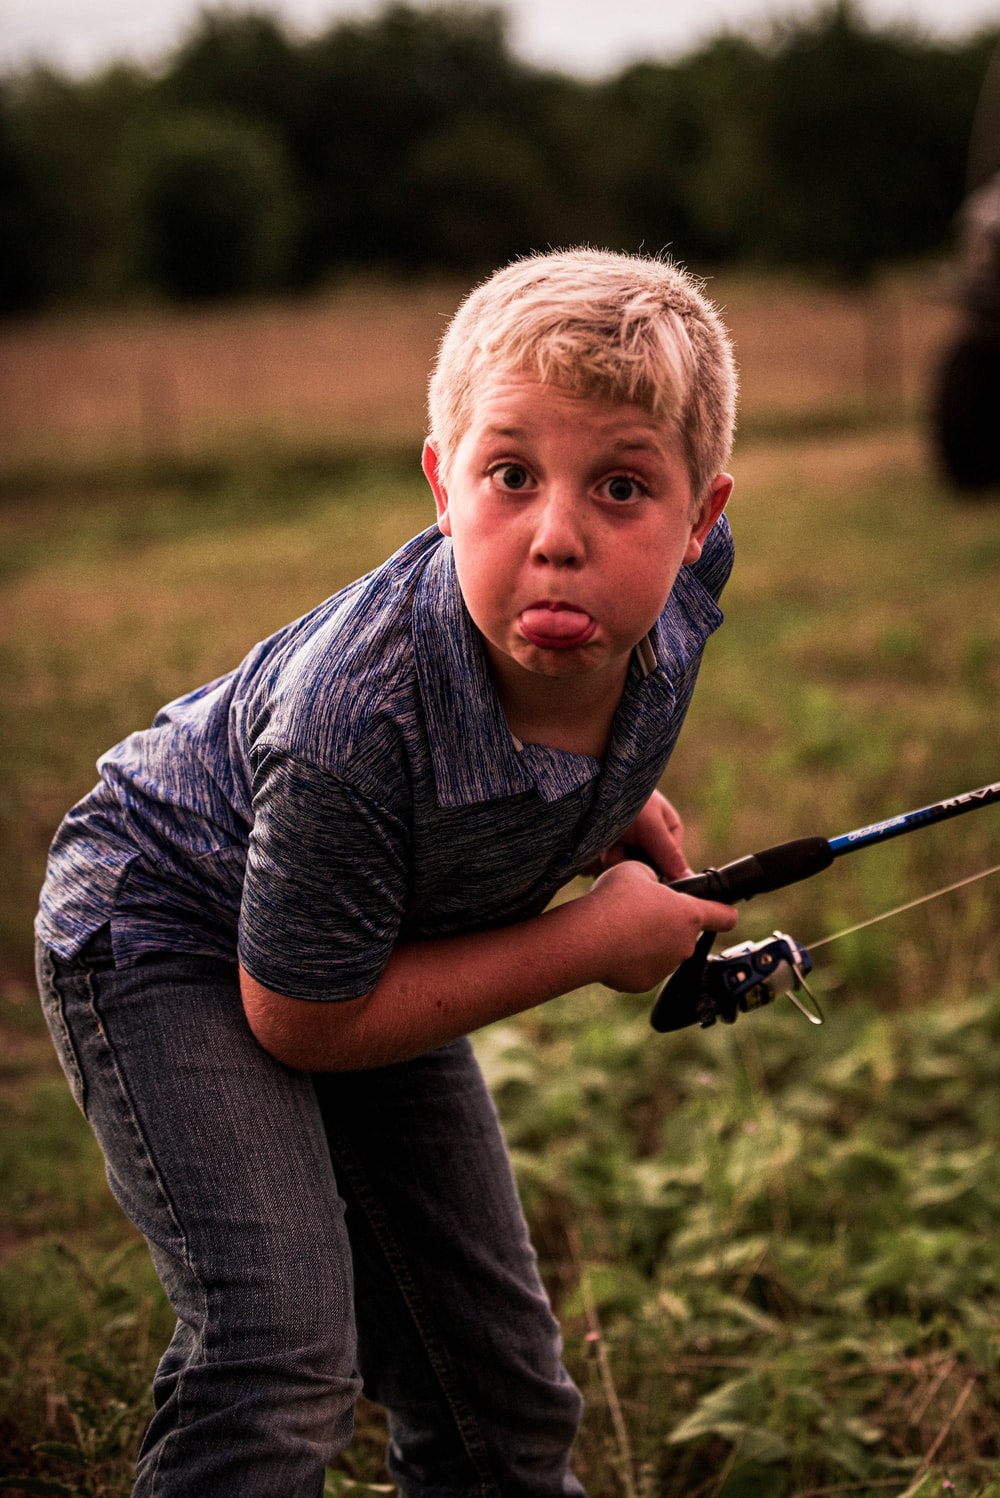 boy in gray and black stripe polo shirt and blue denim jeans holding black fishing rod